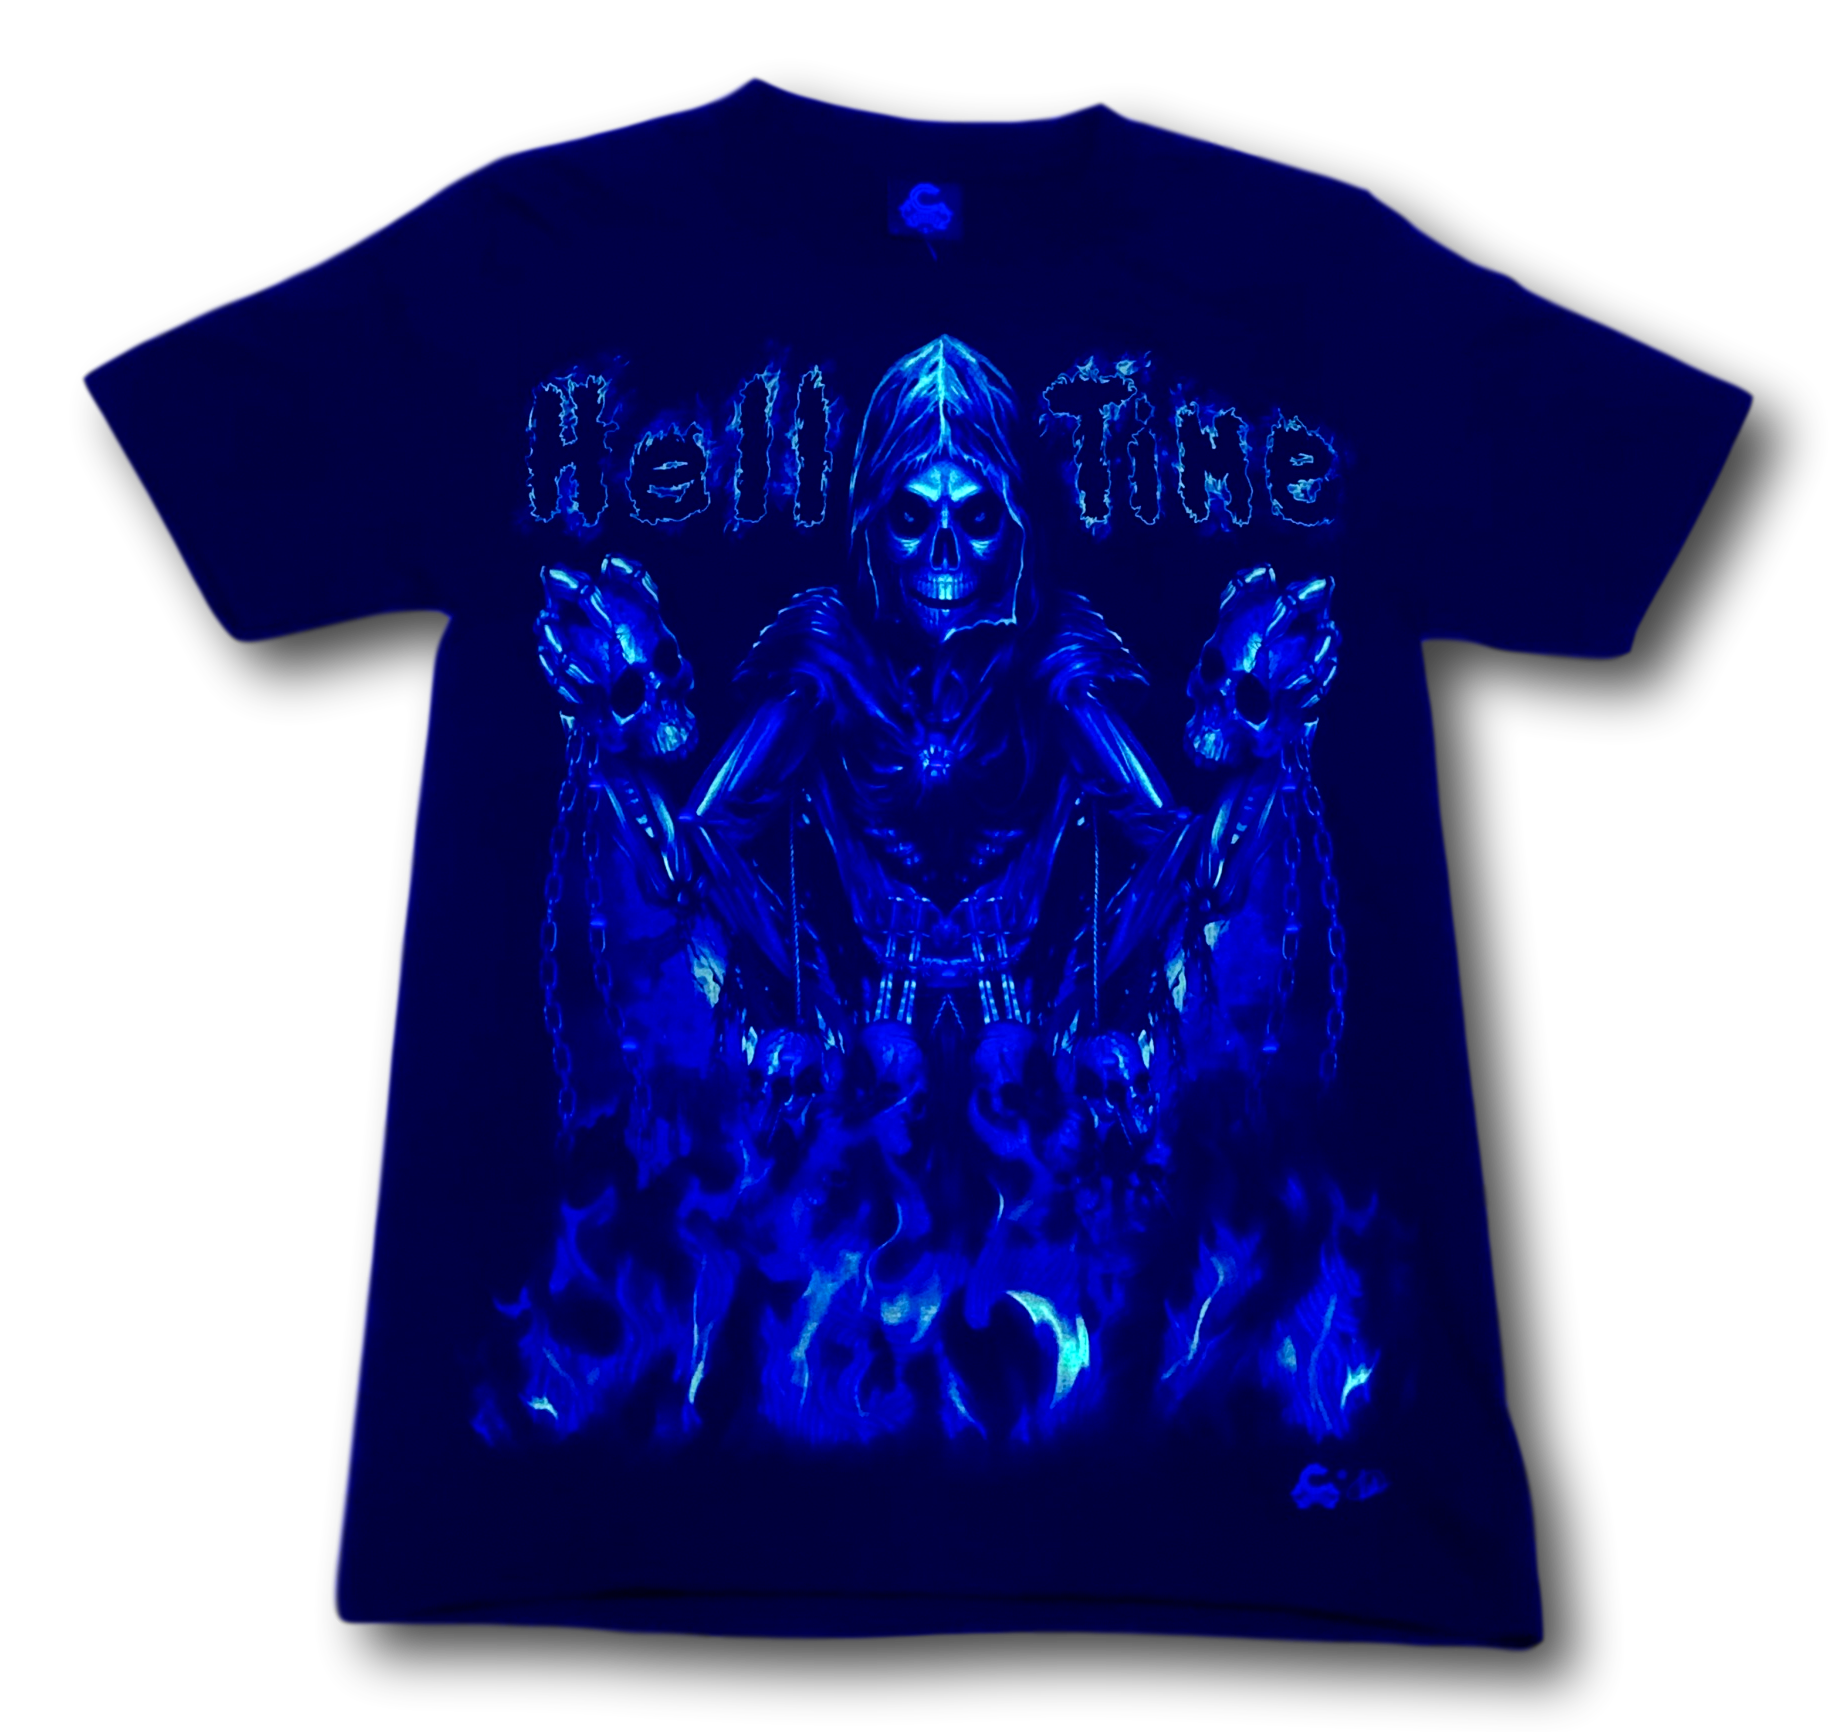 Skull in Hell Time and Metal Ring Glow in the Dark 4D Caballo T-Shirt